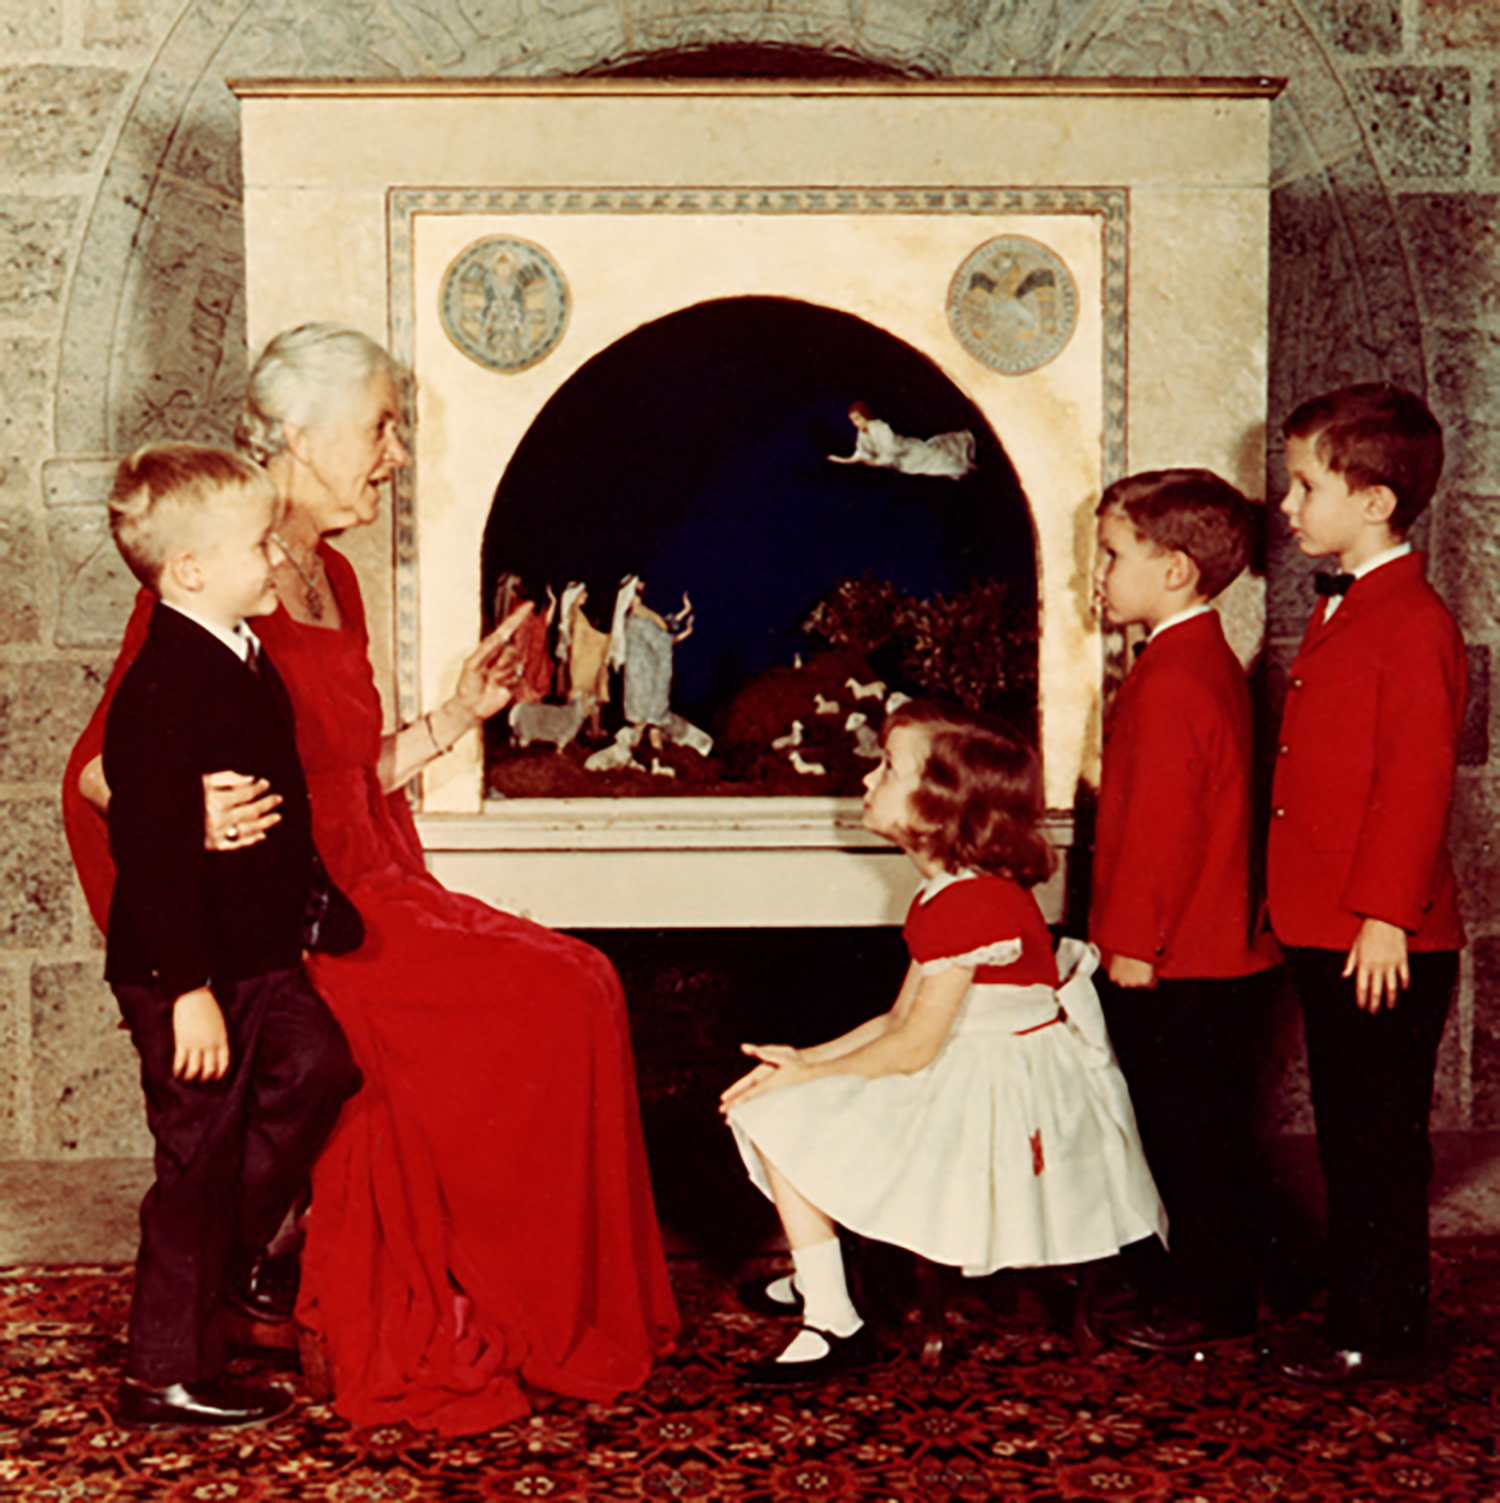 Figure 2: Mildred Pitcairn at Glencairn with her grandchildren in 1967, in front of the Nativity made for the Pitcairn family in the 1920s by Winfred S. Hyatt.